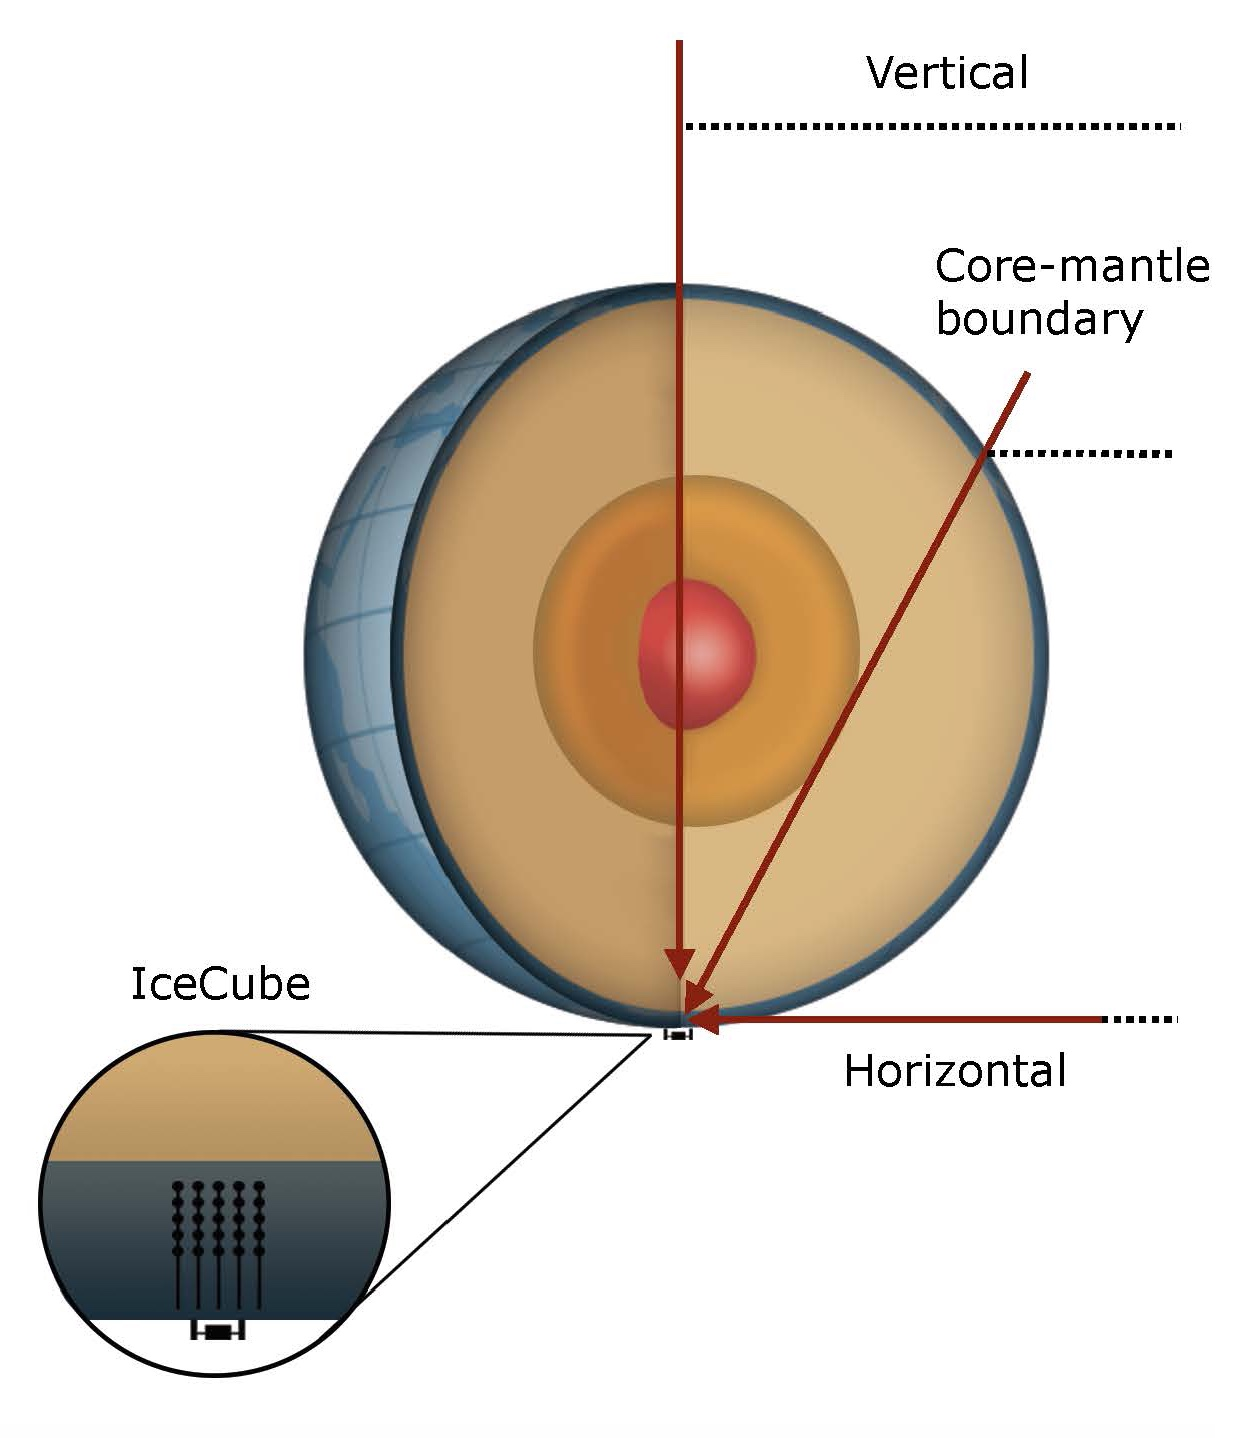 The IceCube team compared the neutrinos that arrived tangentially to those that came through the Earth at different angles.